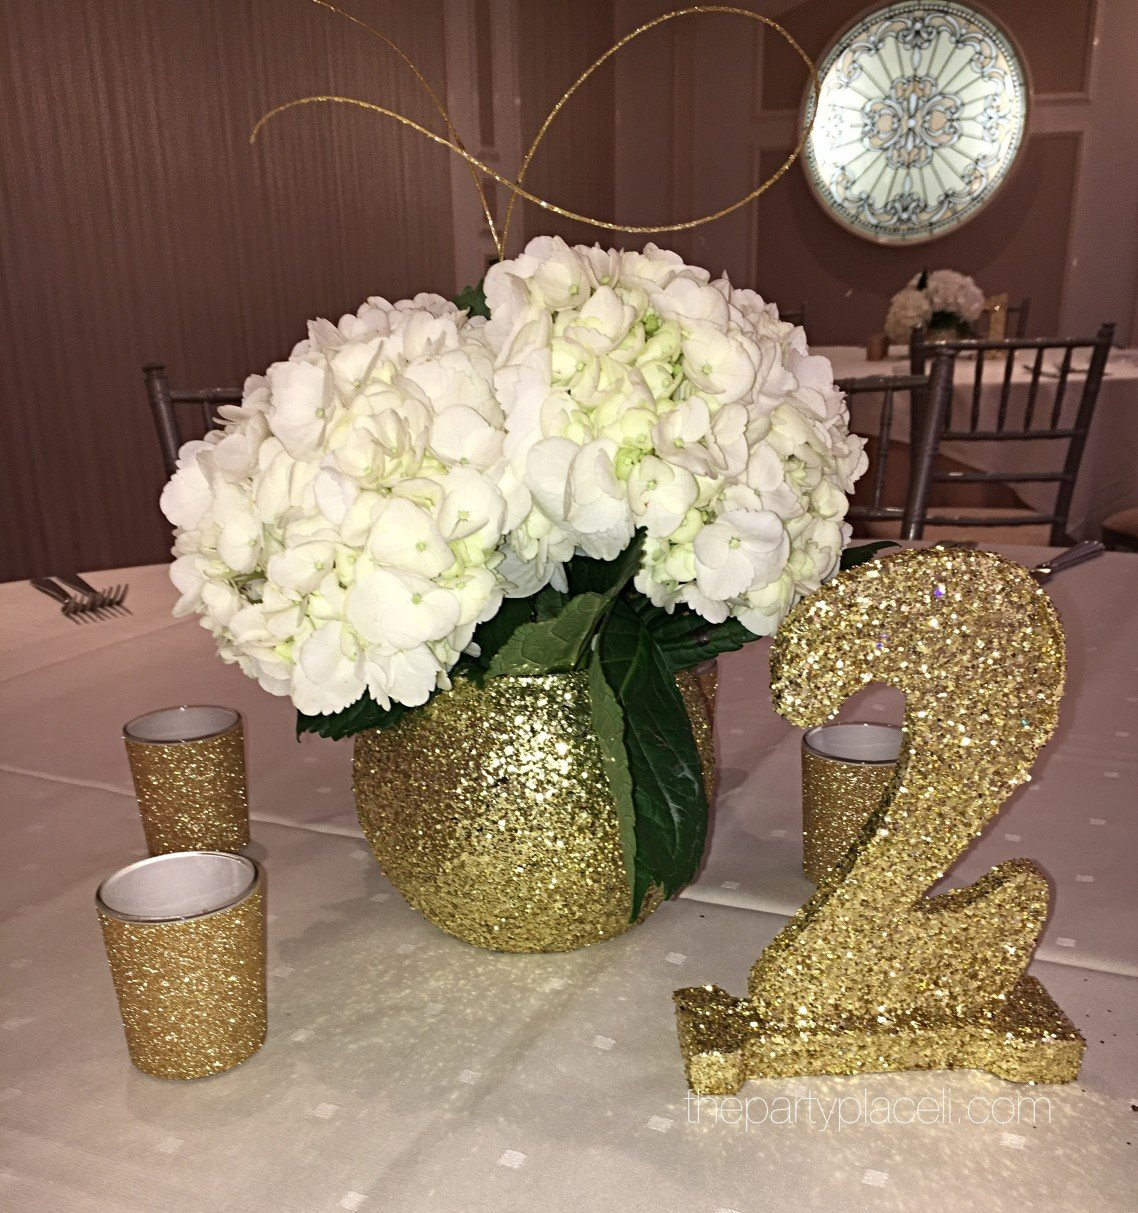 rose gold glitter vase of glitter vase centerpiece vase and cellar image avorcor com with white and gold glitter vase centerpiece centerpieces the party place li specias